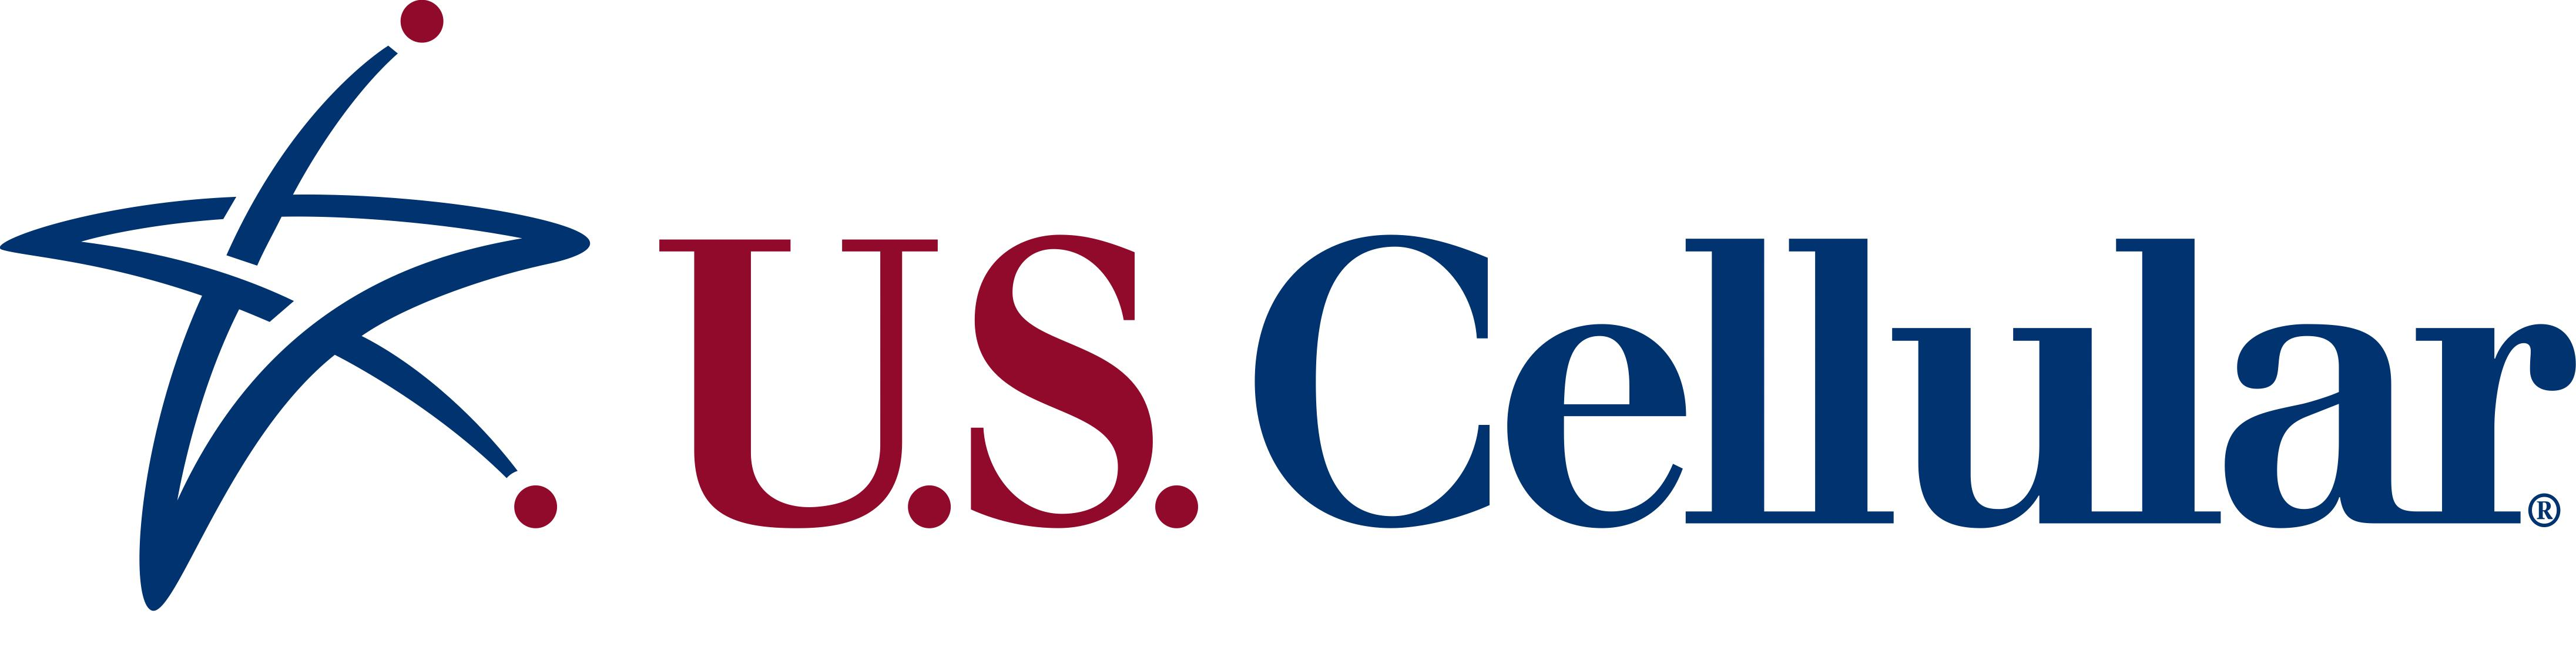 U.S. Cellular Announces Slew of Upcoming 4G LTE Markets